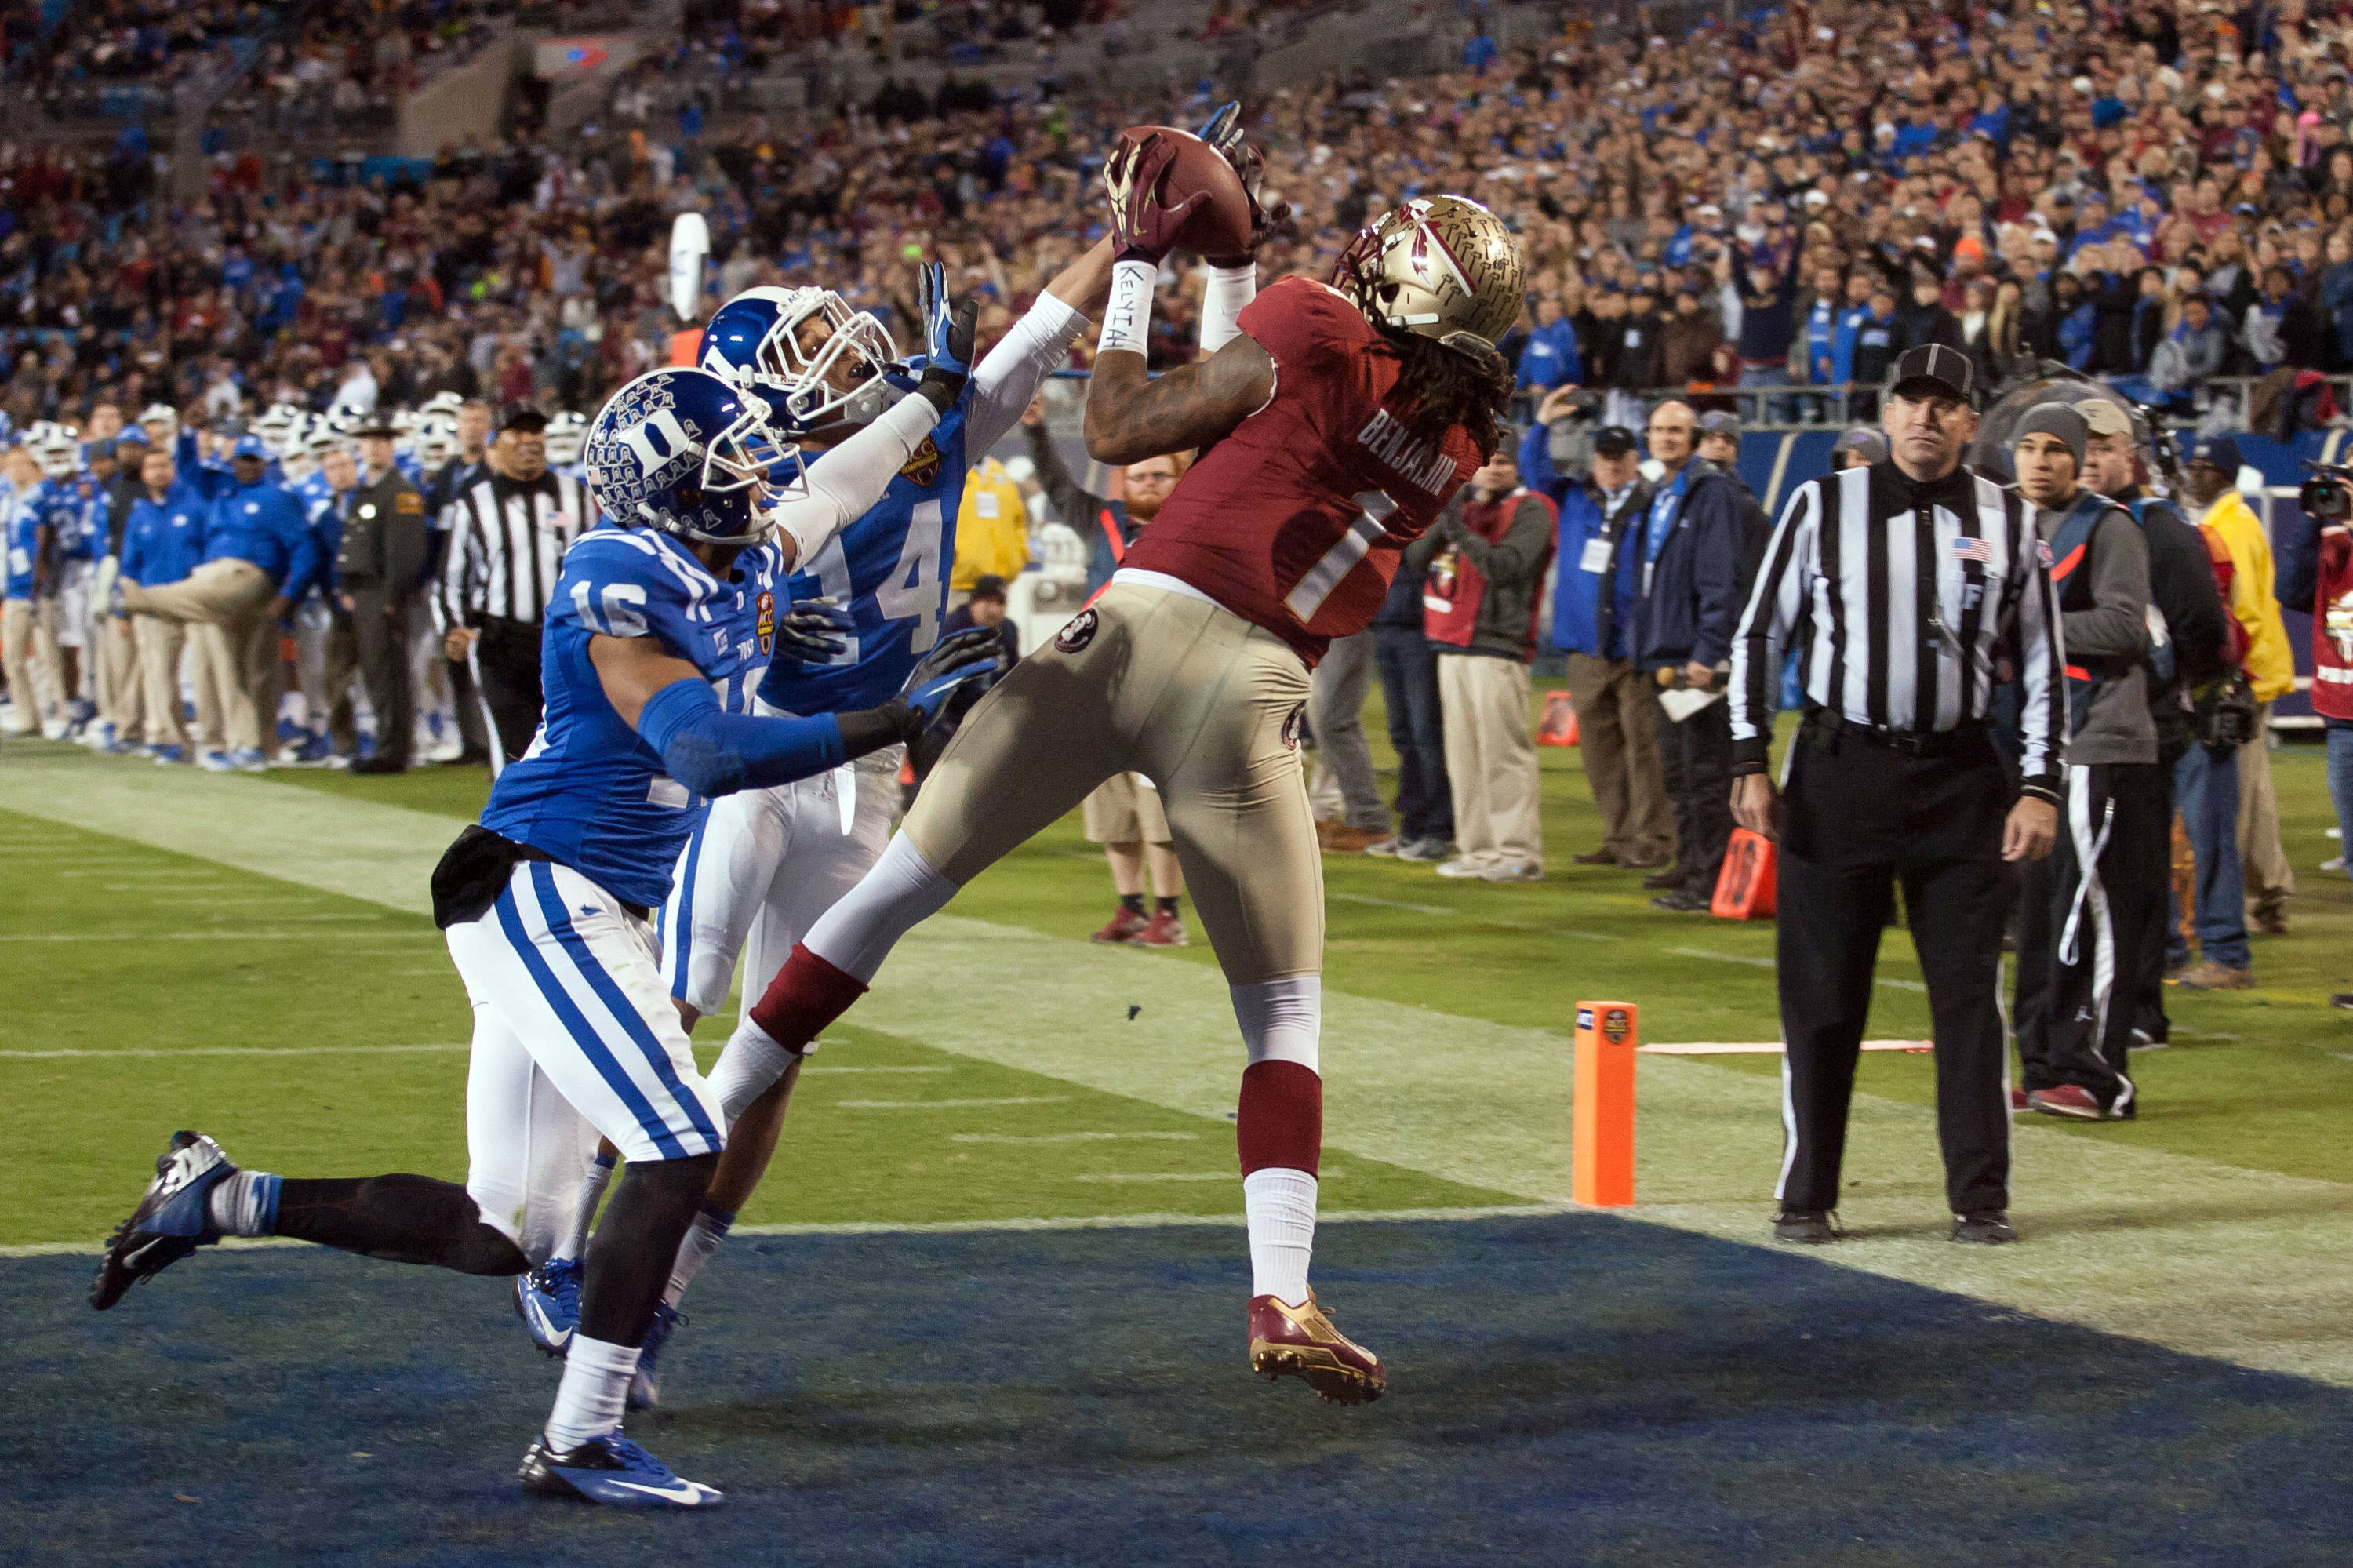 Dec 7, 2013; Charlotte, NC, USA; Florida State Seminoles wide receiver Kelvin Benjamin (1) catches a touchdown pass during the first quarter against the Duke Blue Devils at Bank of America Stadium. Mandatory Credit: Jeremy Brevard-USA TODAY Sports